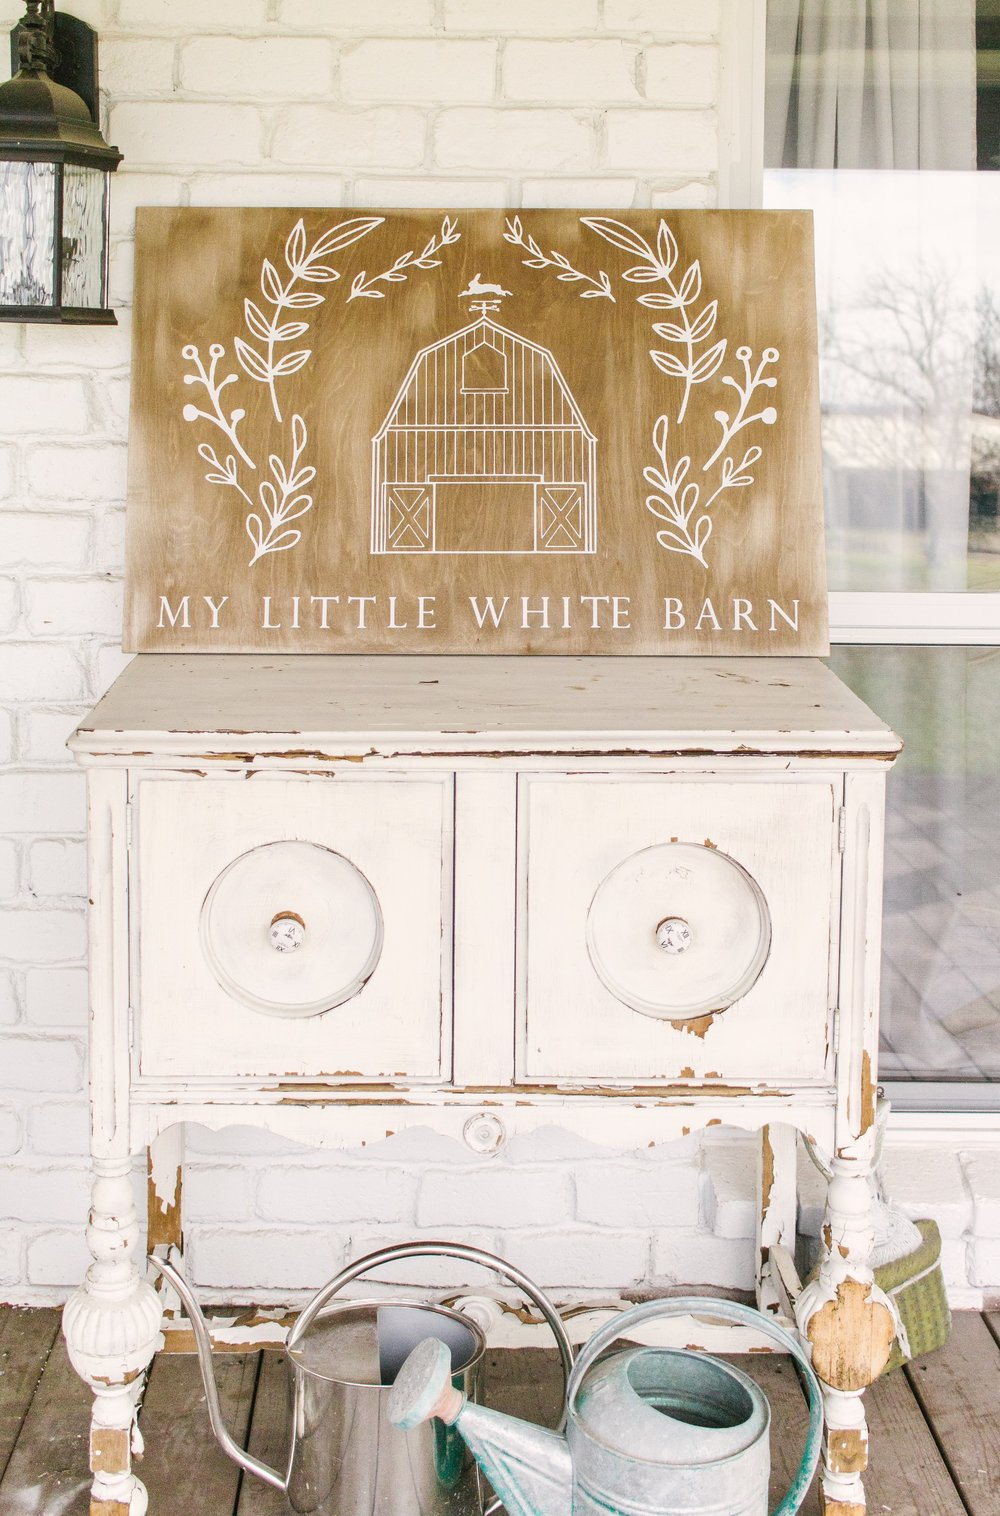 My Little White Barn Home Tour - Spring Decor Inspiration - Front Porch